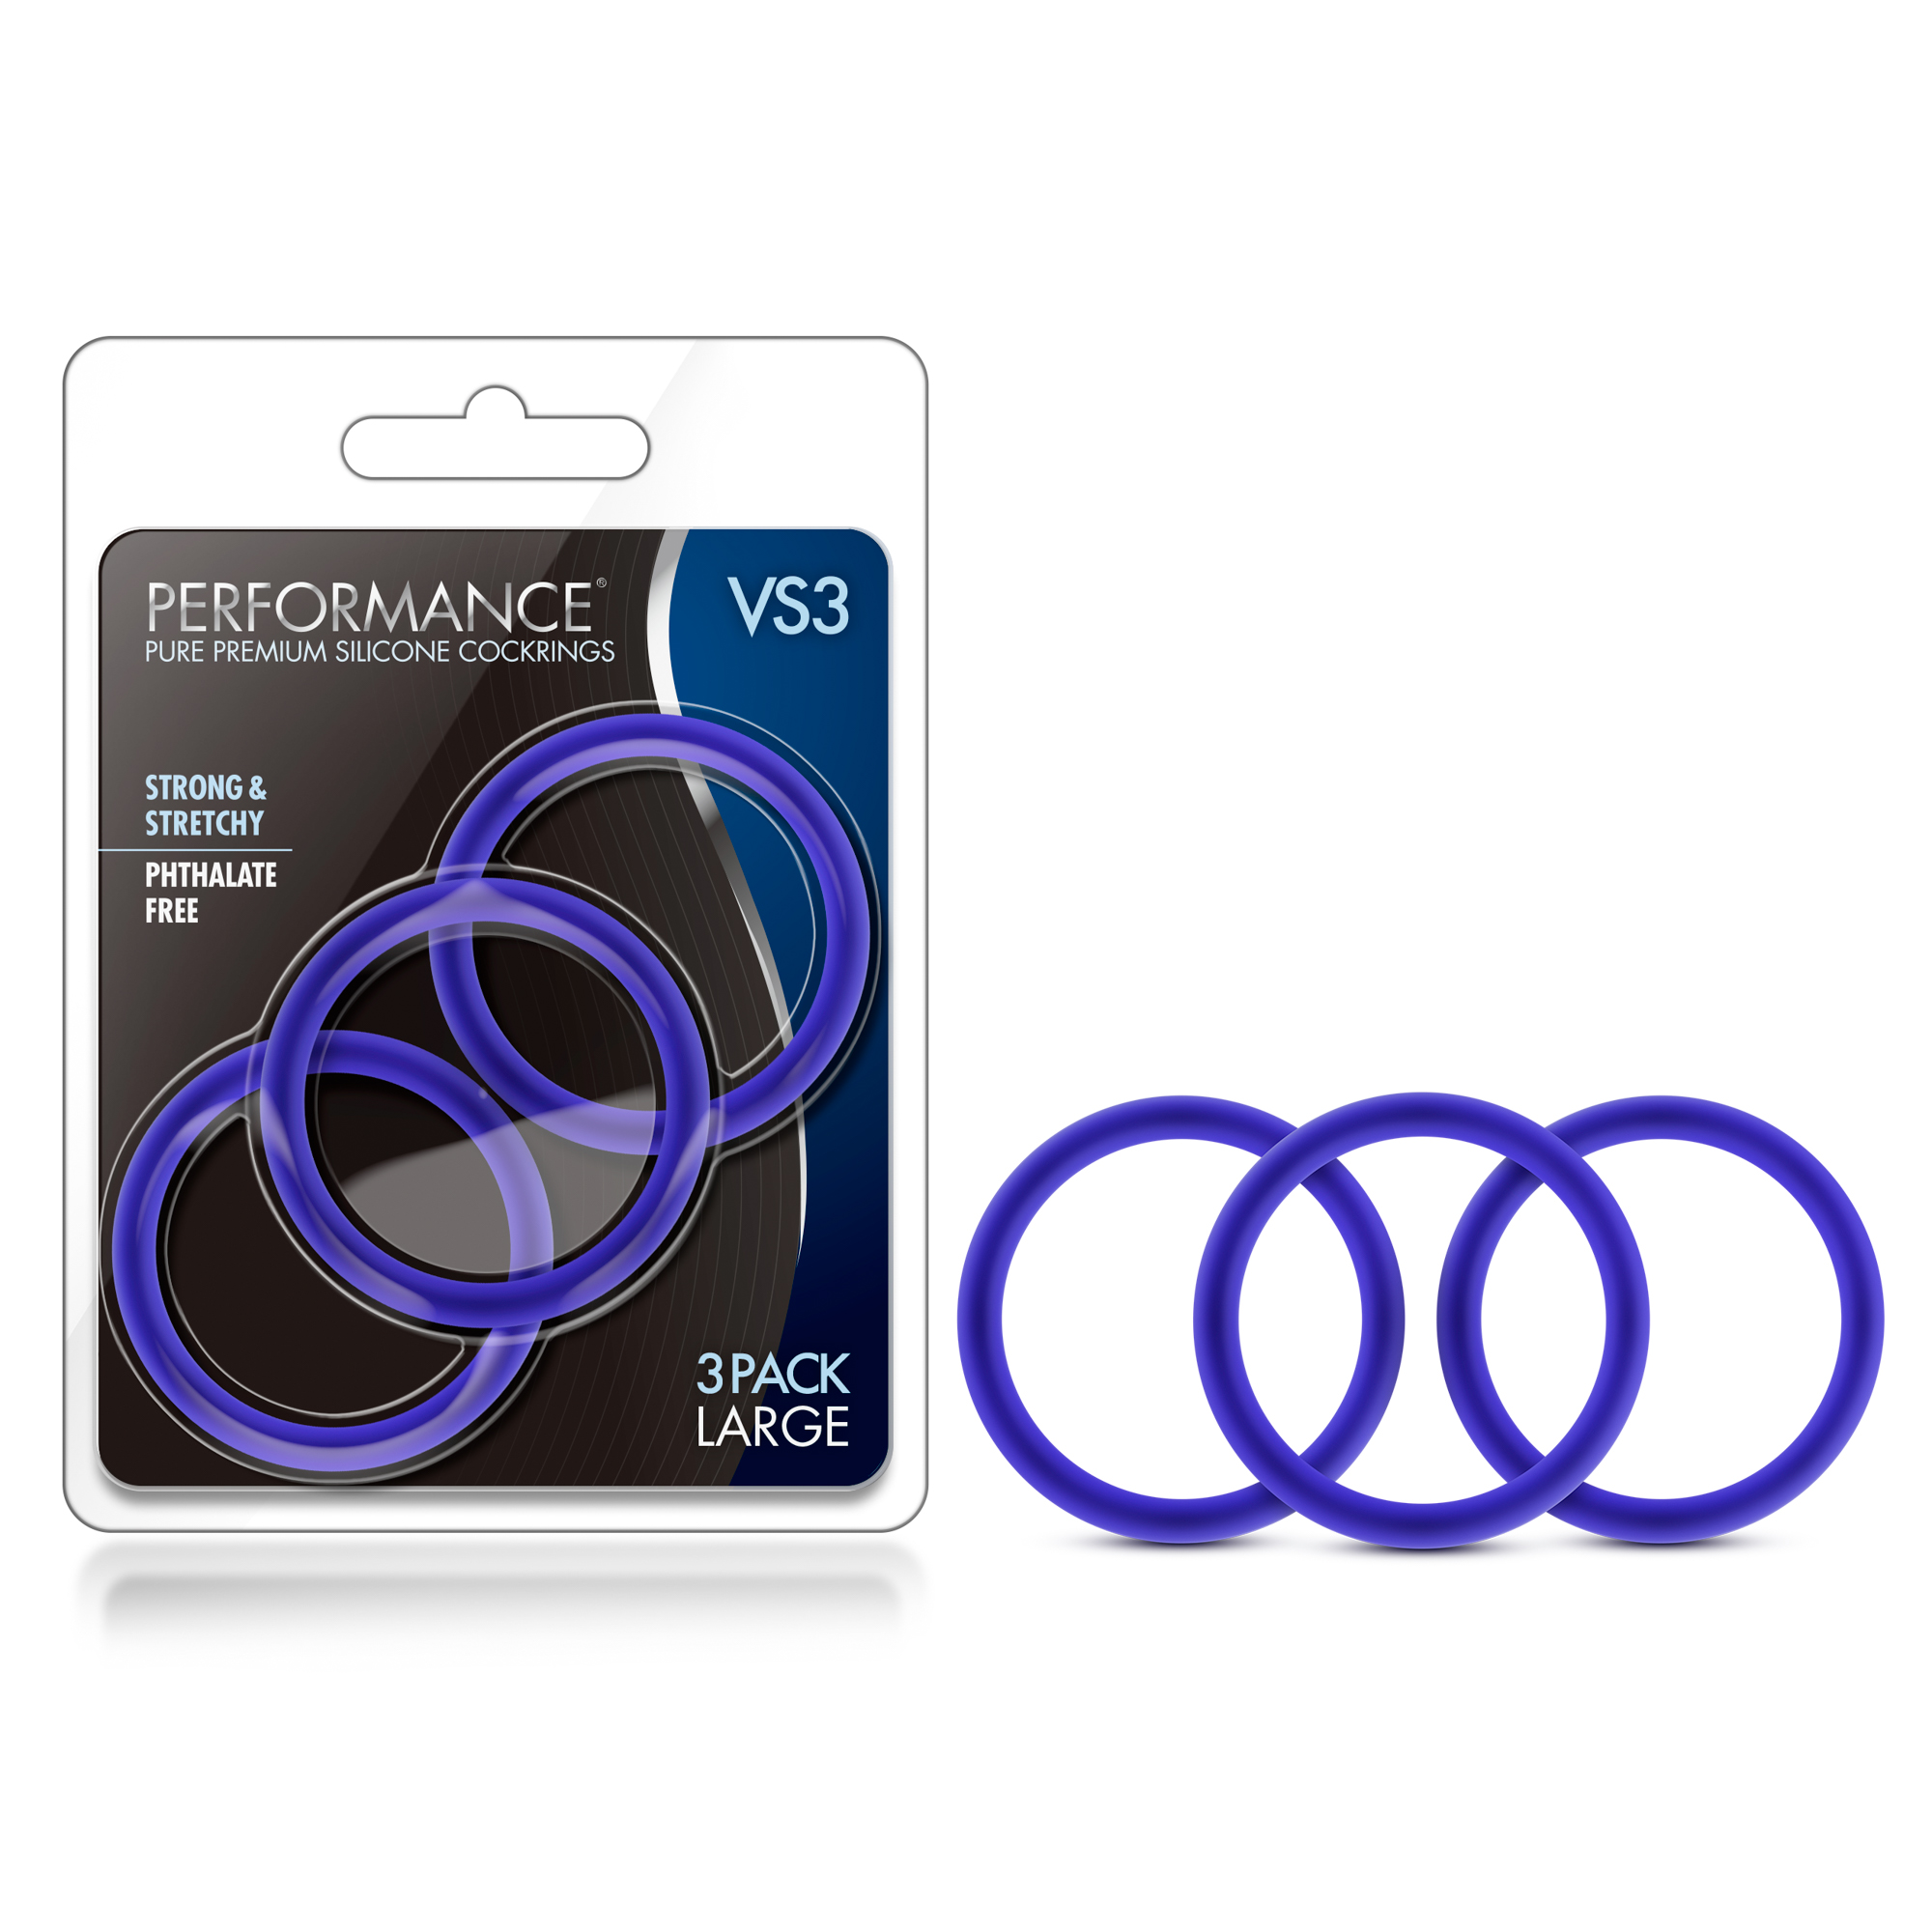 Performance - VS3 Pure Premium Silicone Cock Rings - Large - Indigo